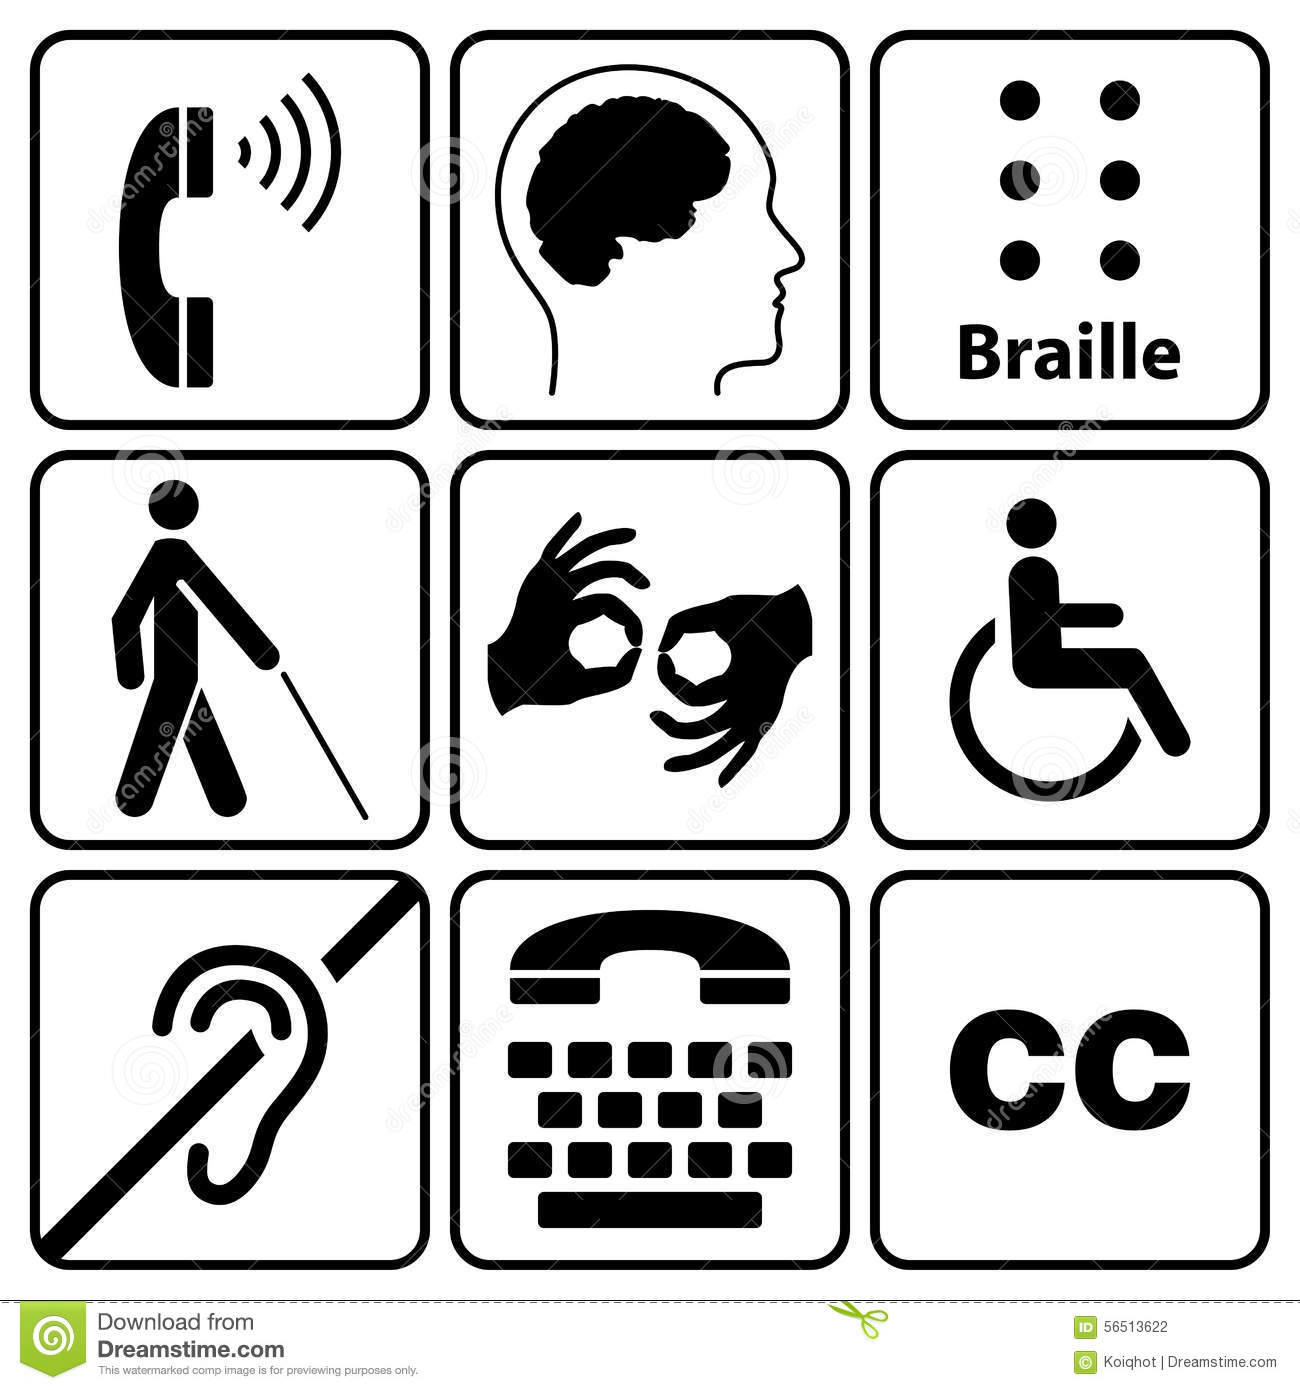 Disability Symbols And Signs Collection Stock Vector